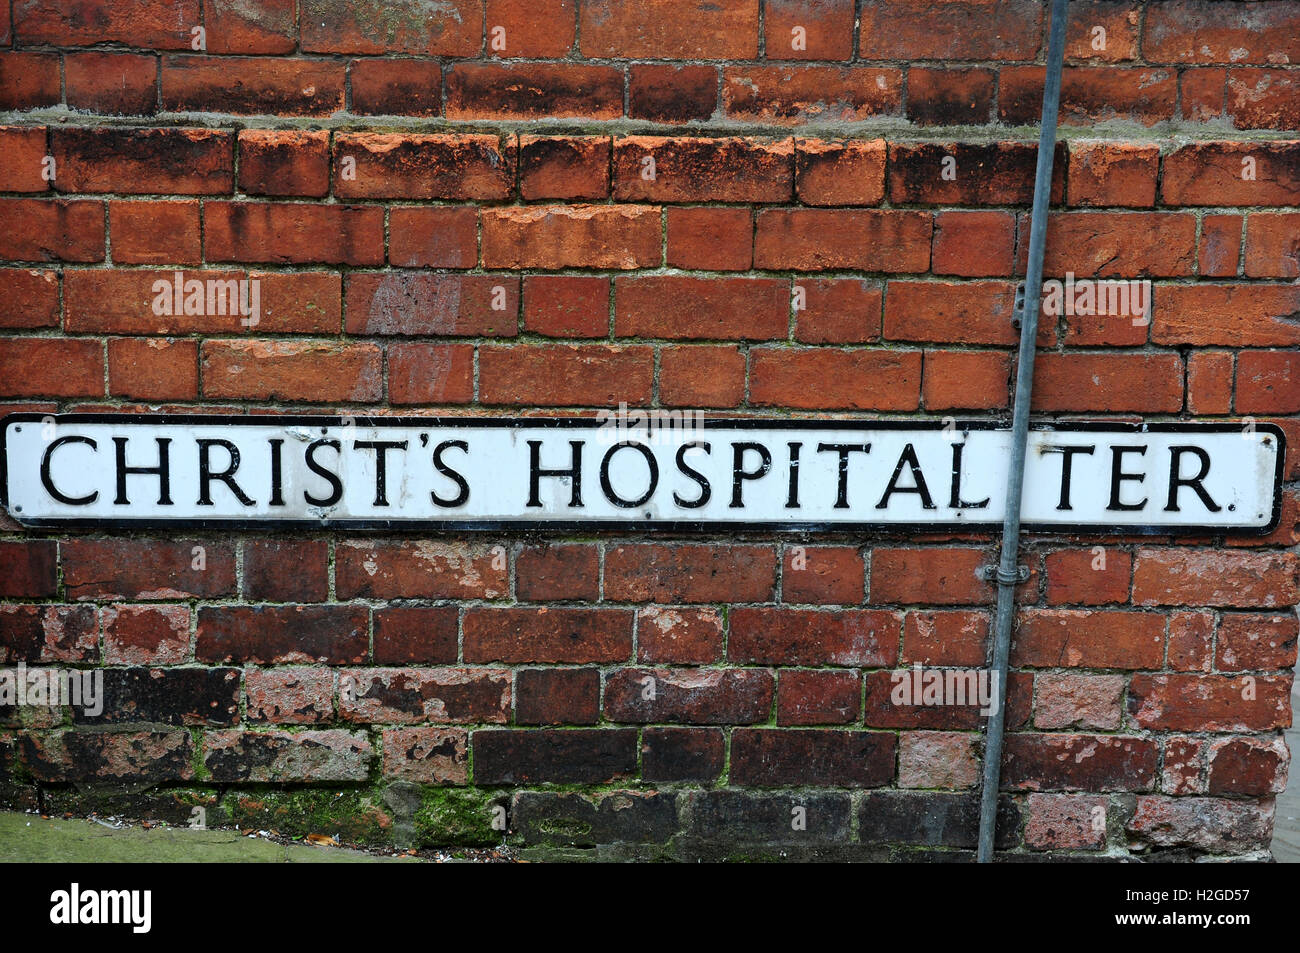 Name of road off Steep Hill Lincoln - Stock Image